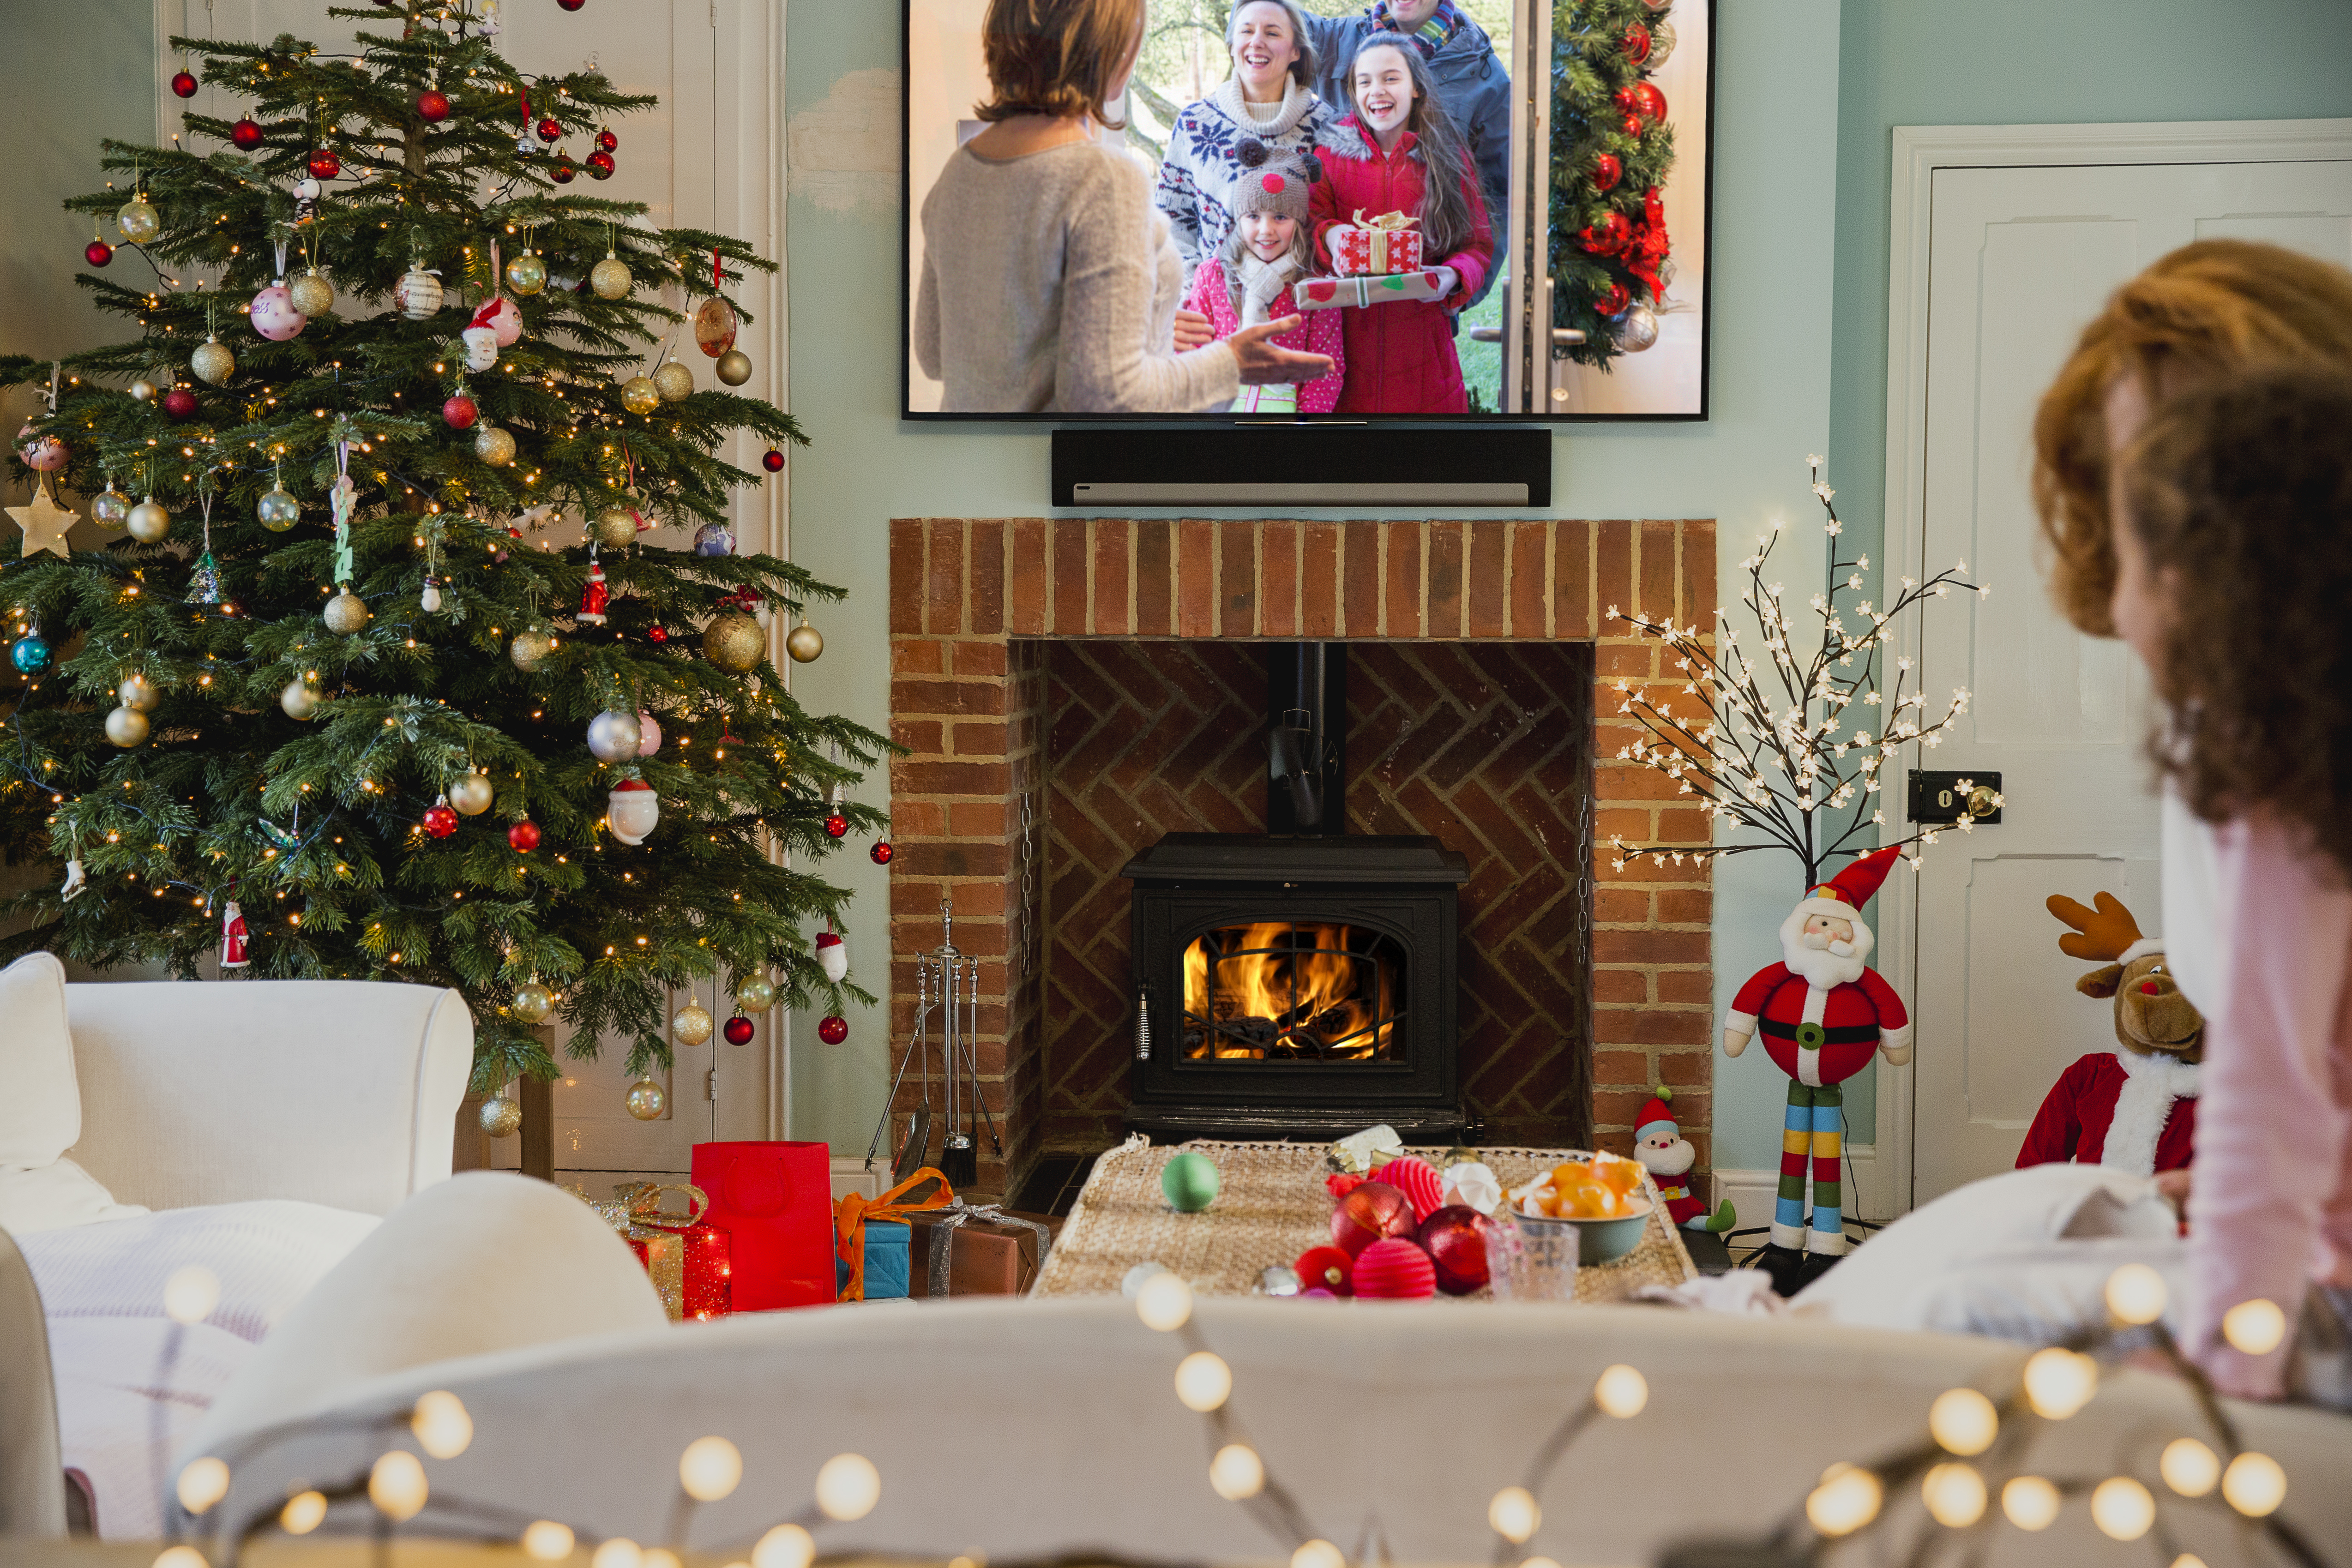 Top 10 tips for moving house at Christmas – Property blog